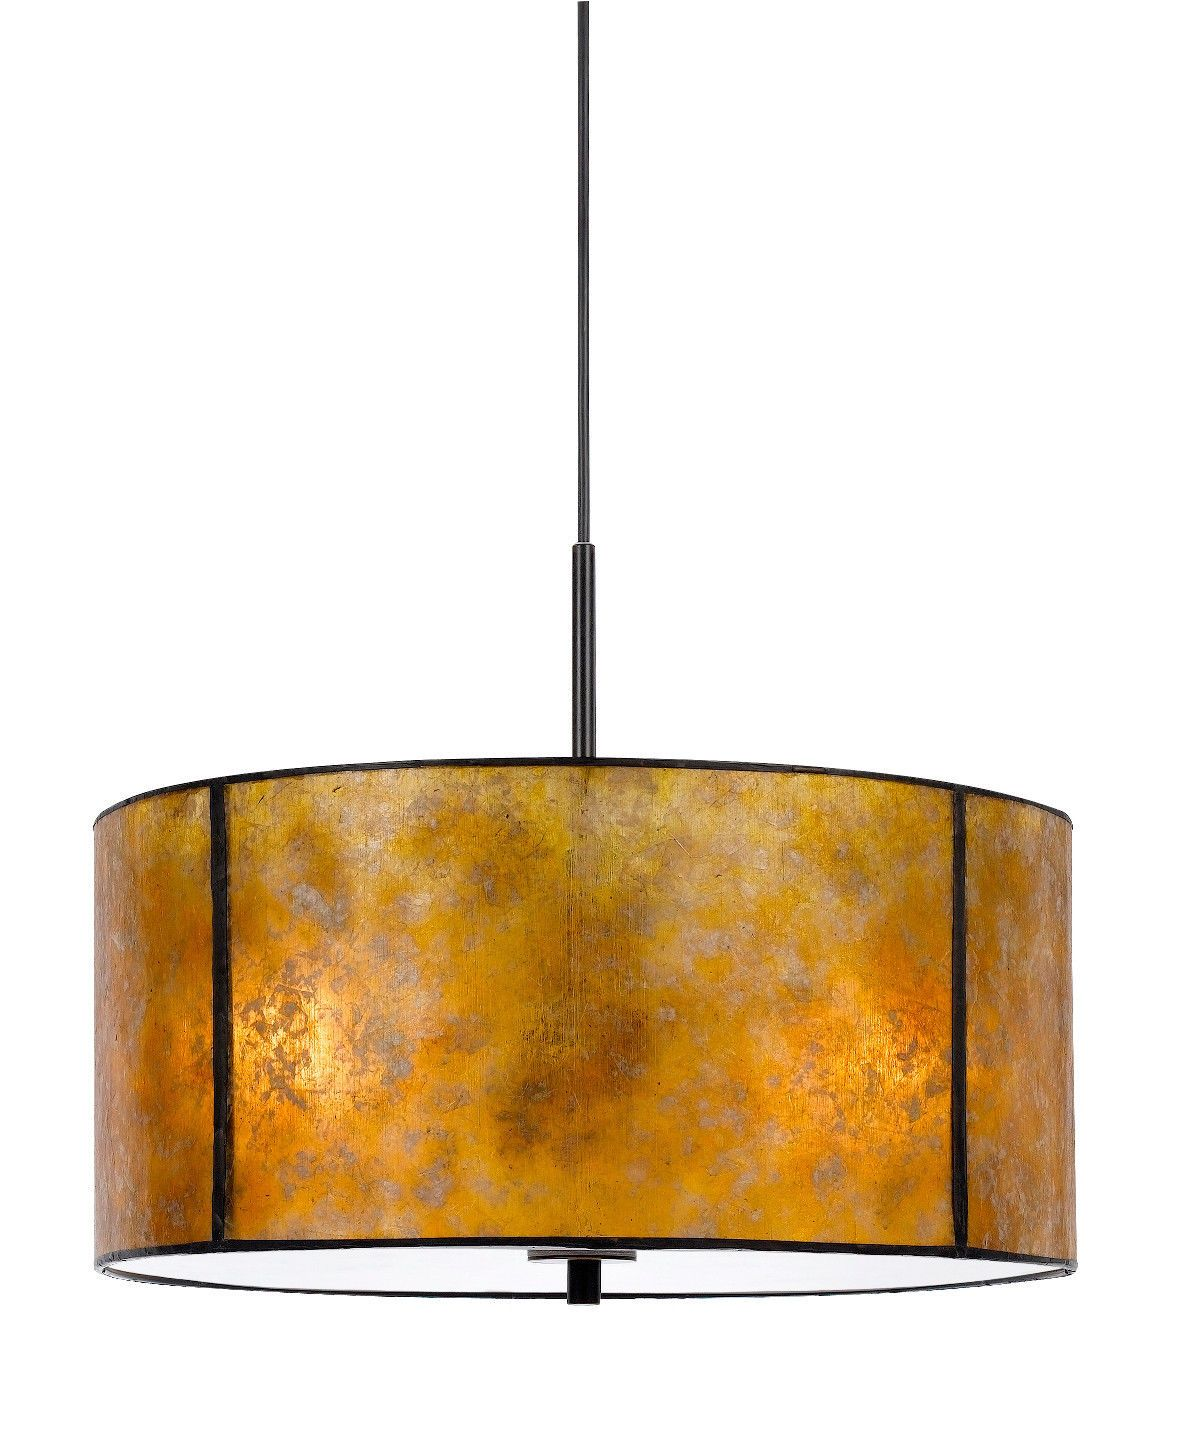 Amber mica pendant light stocked in 18 width custom sizes and